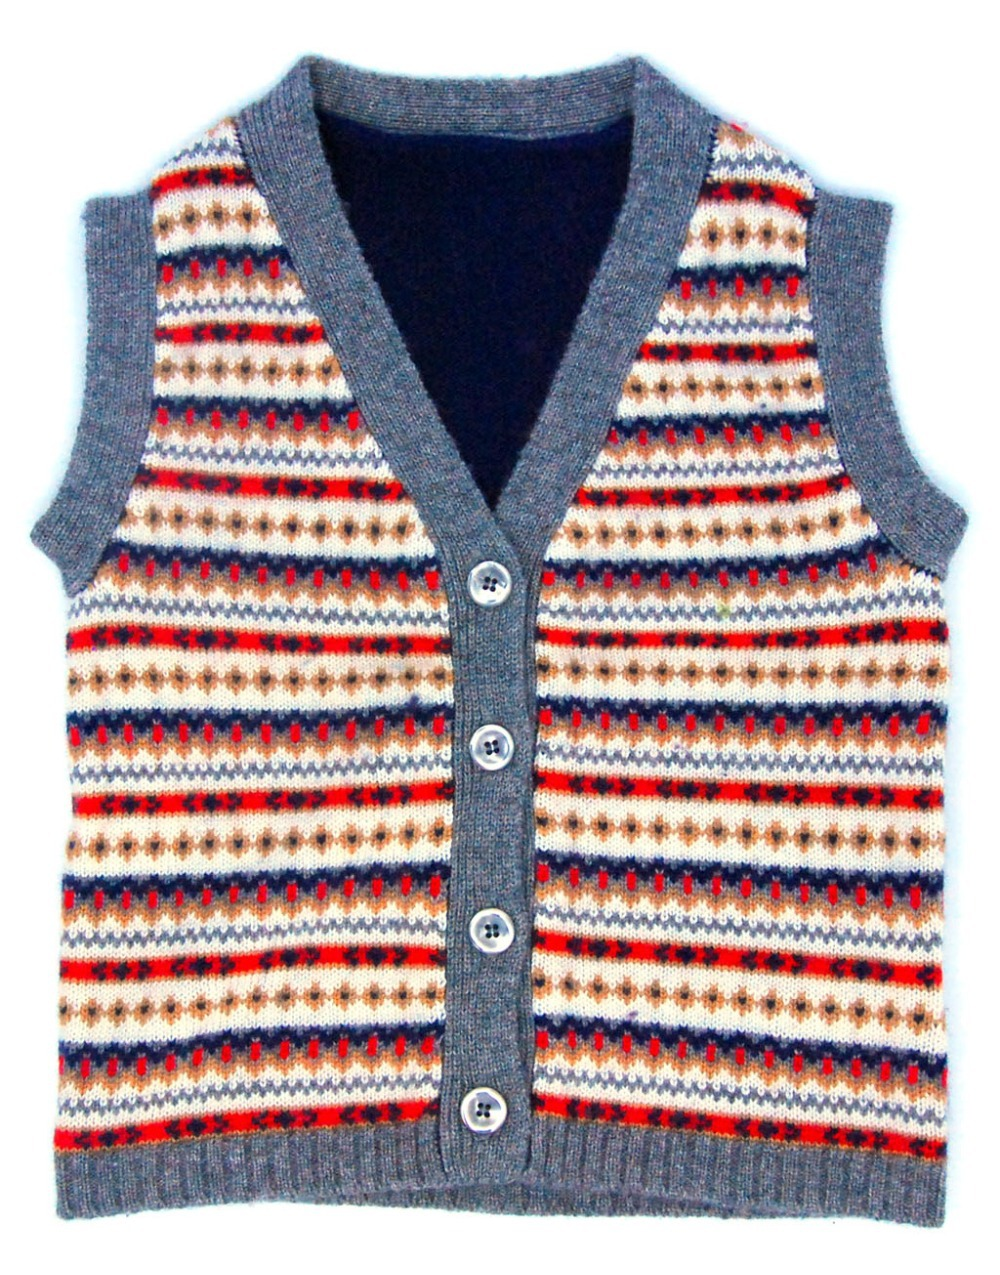 Children's Clothing Sweaters Cashmere Warm Soft Boys Cardigan Composition Dark Blue Sleeveless Waistcoat Vest Boy Italy Desig blue sky cashmere blue sky cashmere кашемировый кардиган с шелком 160842